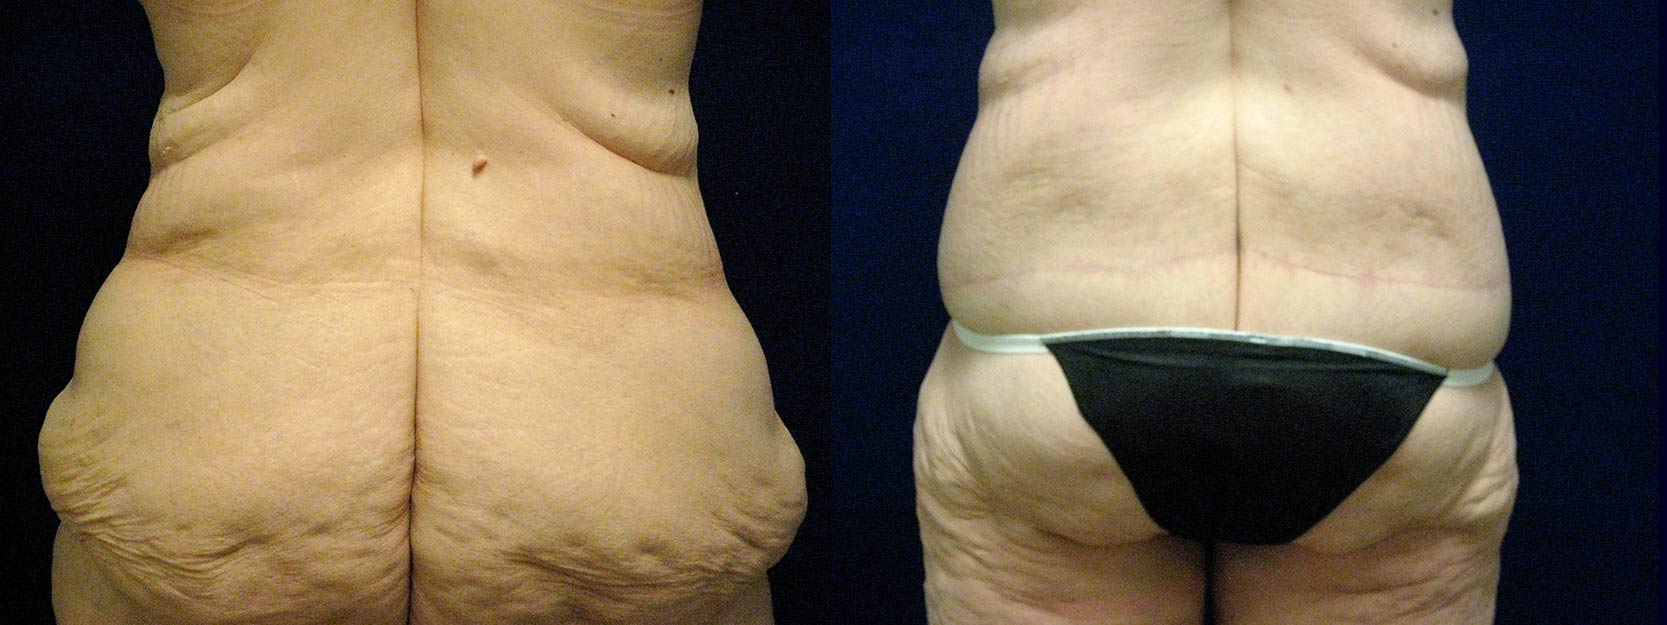 Posterior View - Circumferential Tummy Tuck After Massive Weight Loss